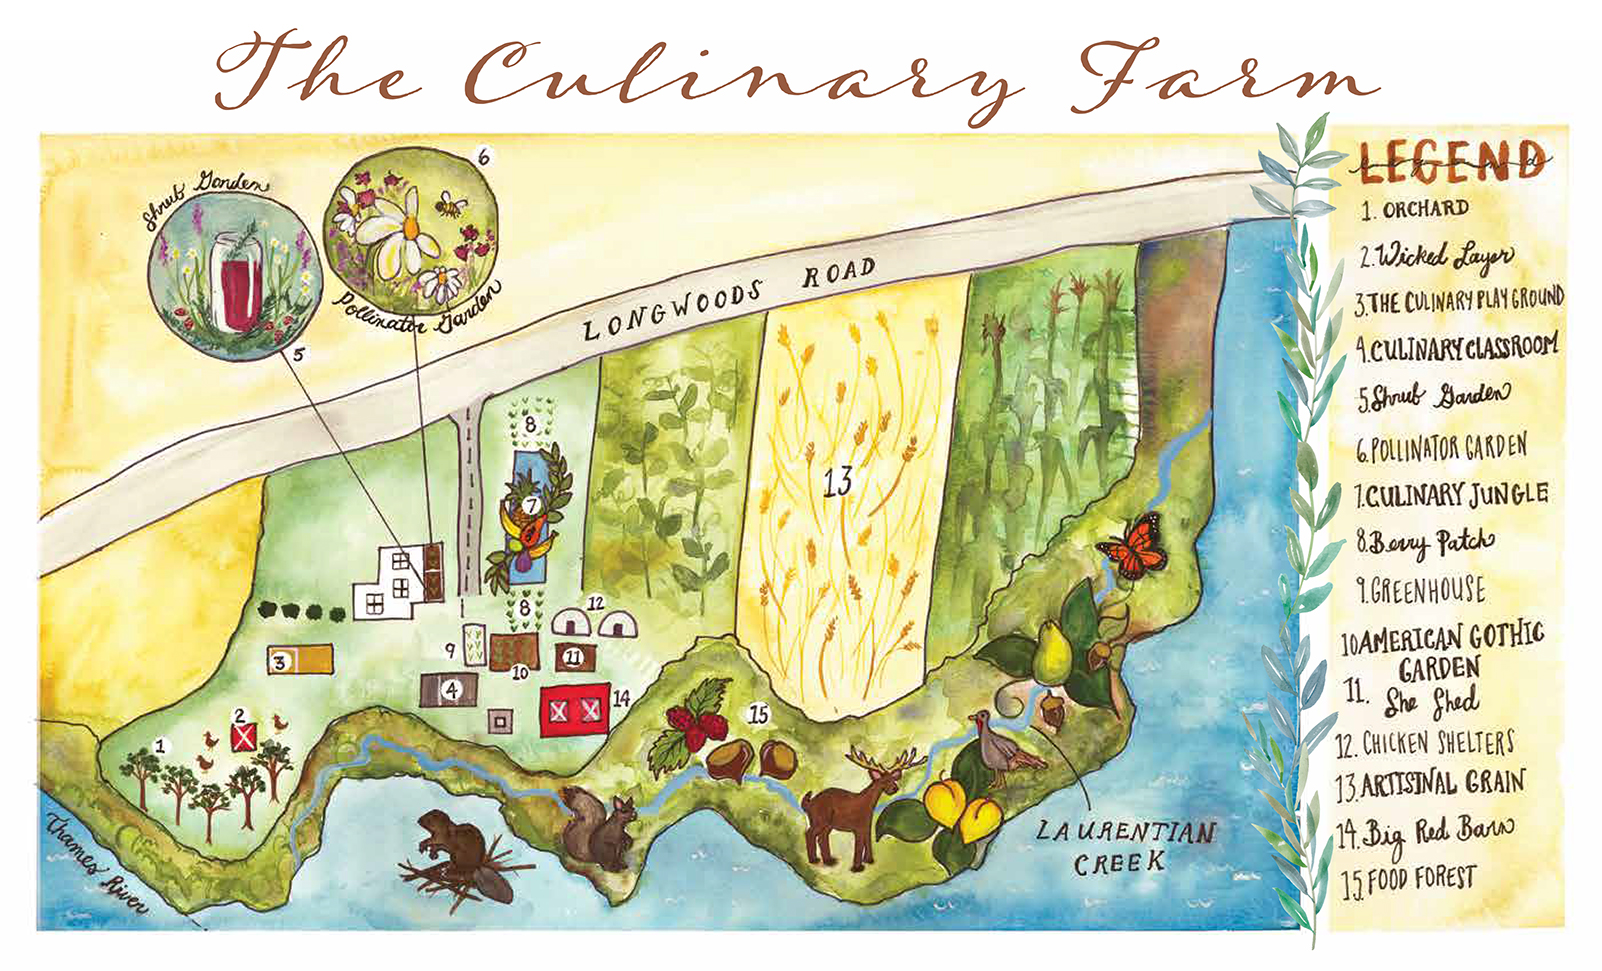 The Culinary Farm illustrated map of the property